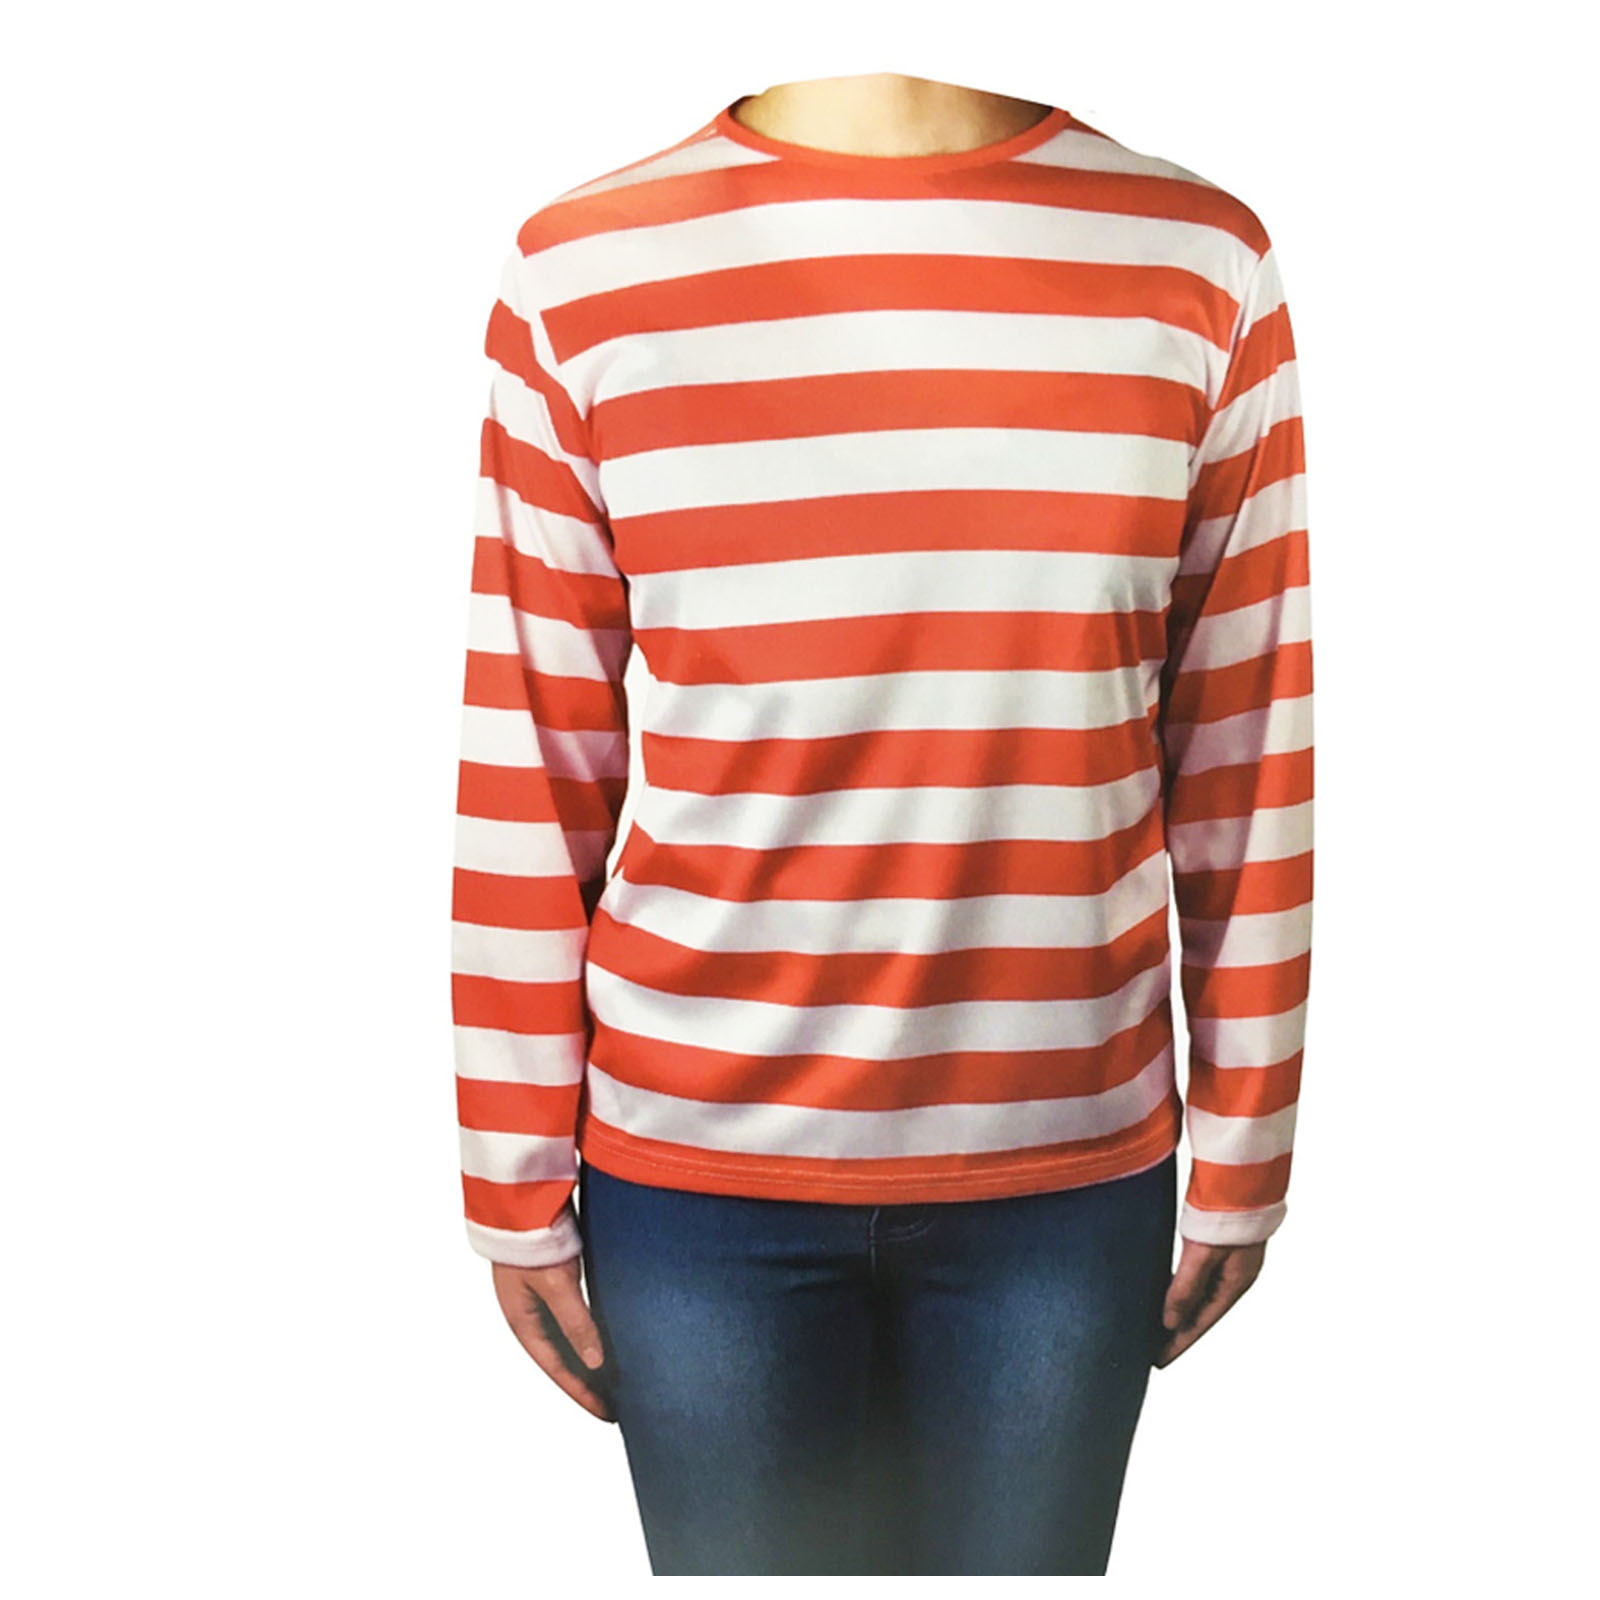 Red and White Striped Top Shirt Costume Party Dress Up Long Sleeve Stripe New